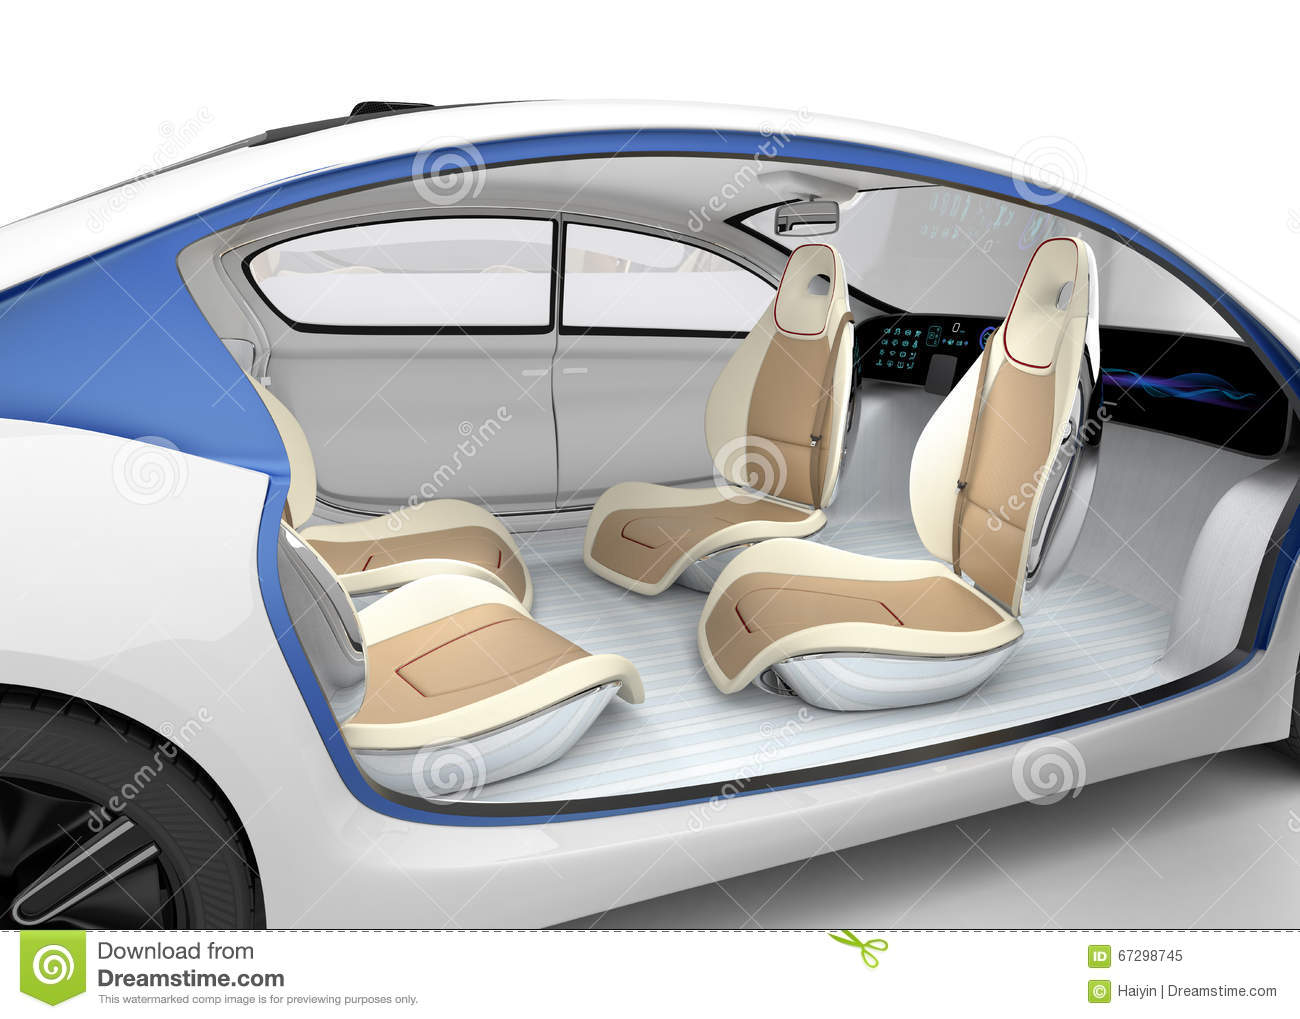 autonomous car 39 s interior concept the car offer folding steering wheel rotatable passenger. Black Bedroom Furniture Sets. Home Design Ideas